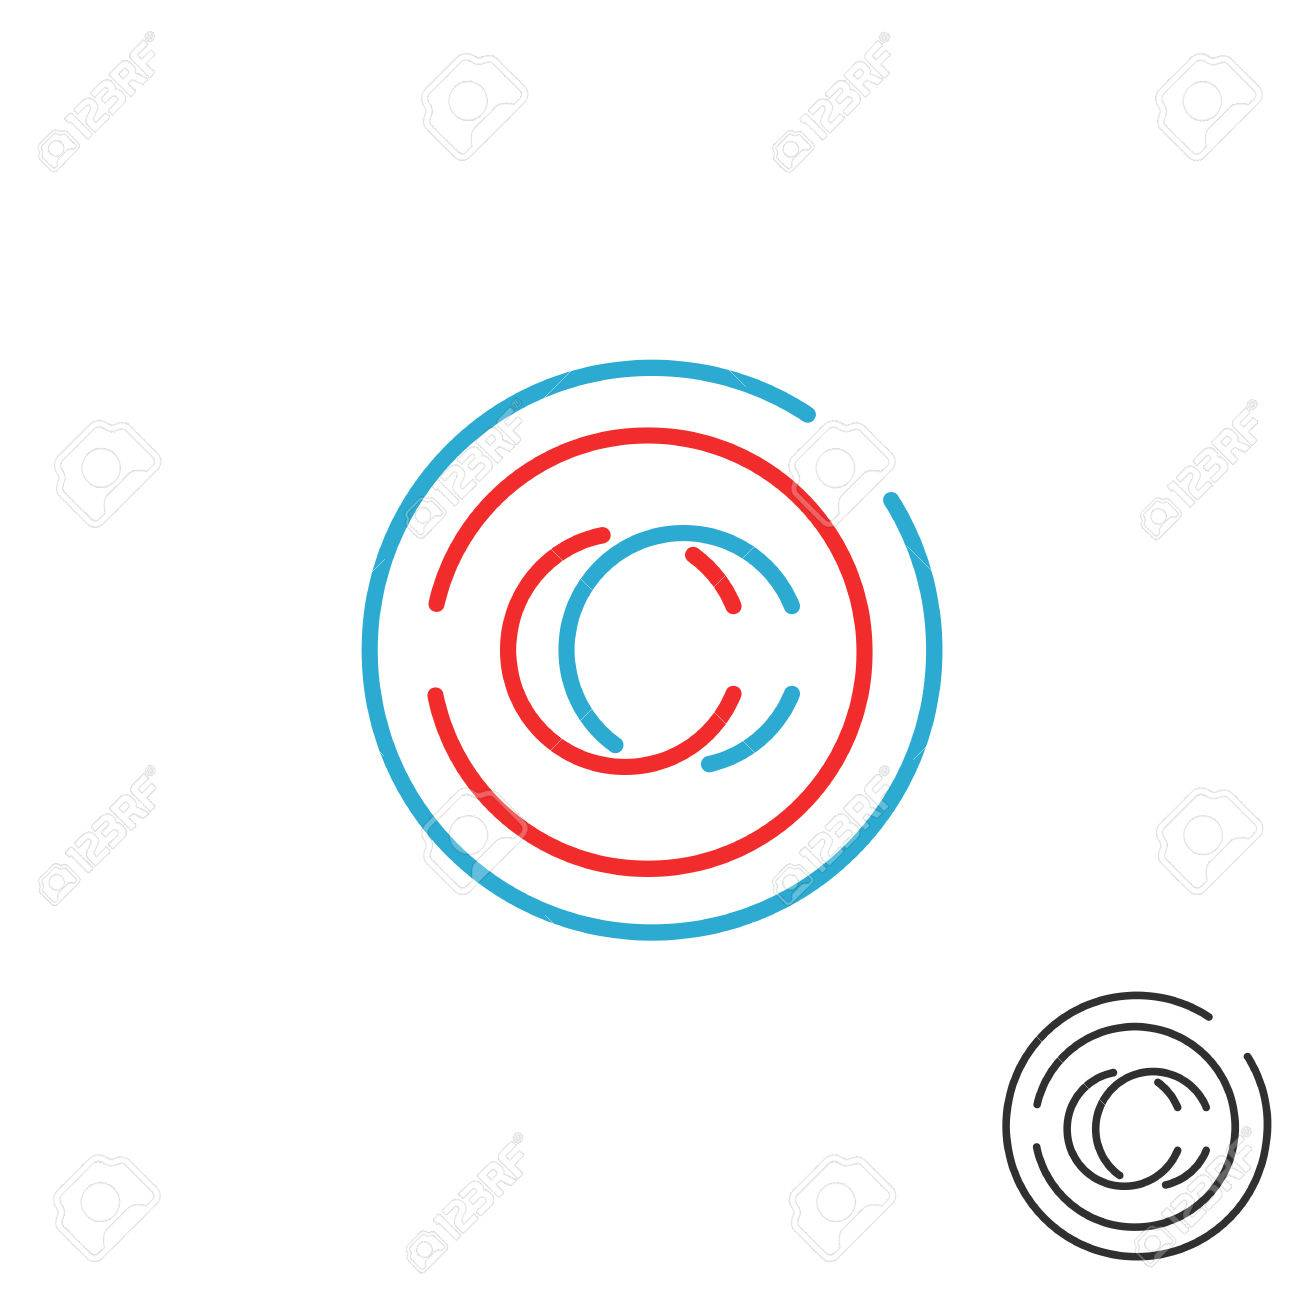 C letter monogram logo circle intersection line icon mockup c letter monogram logo circle intersection line icon mockup business card emblem stock vector biocorpaavc Images